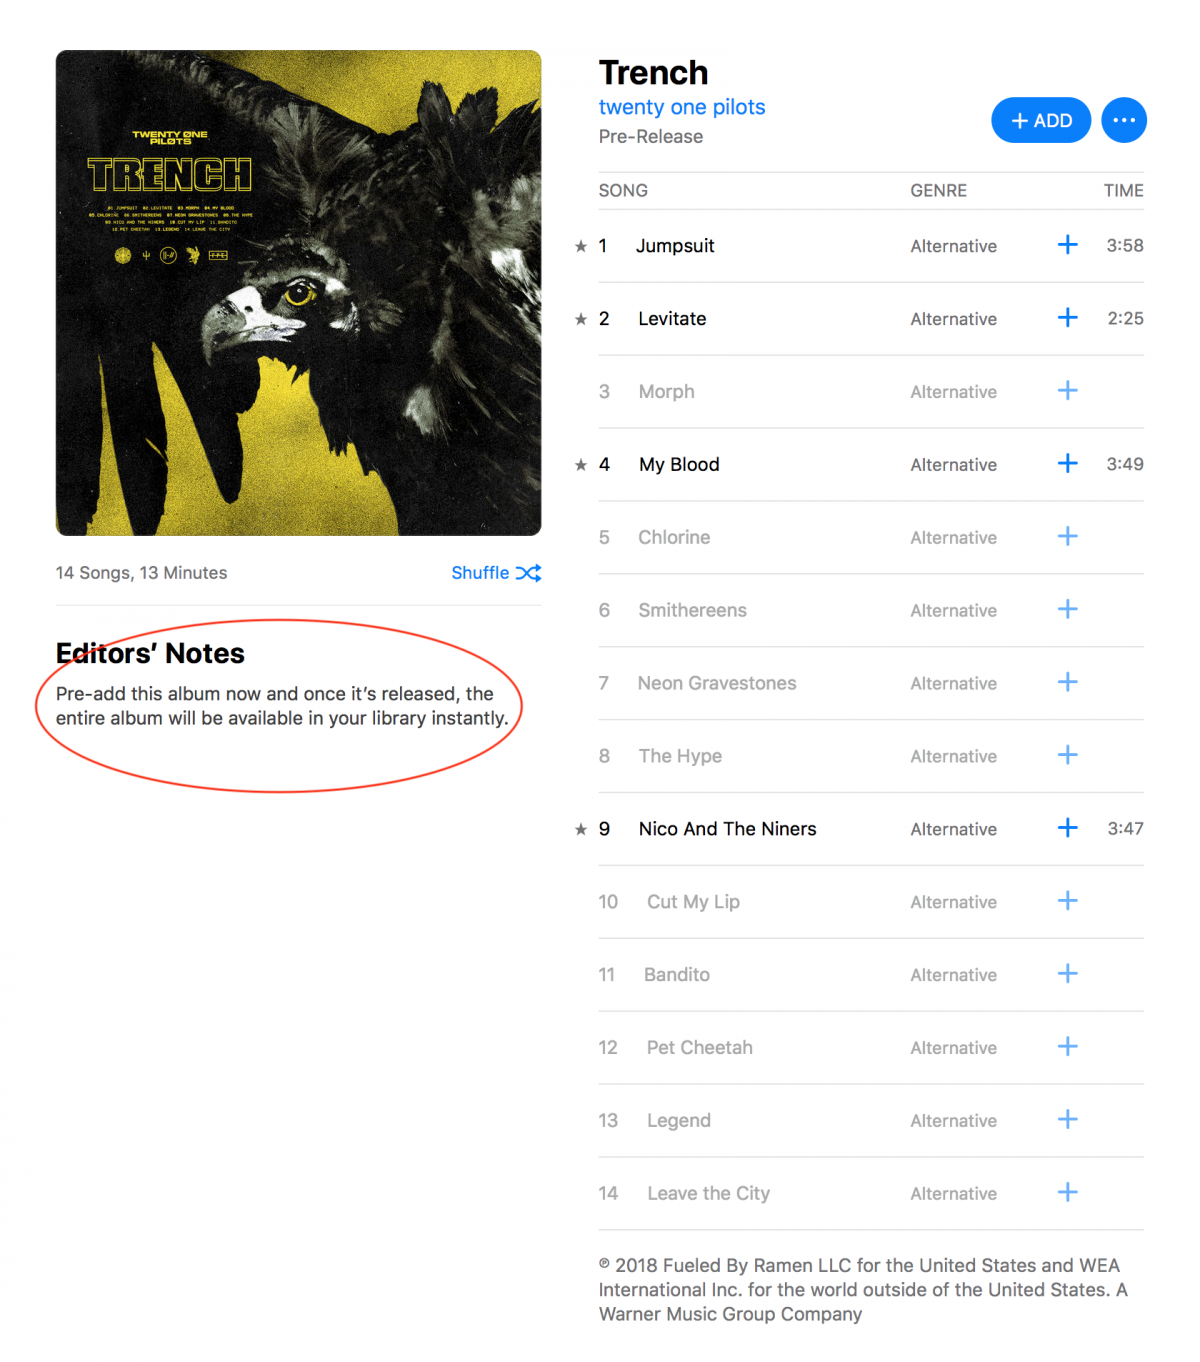 twenty one pilots' Trench pre-release on Apple Music